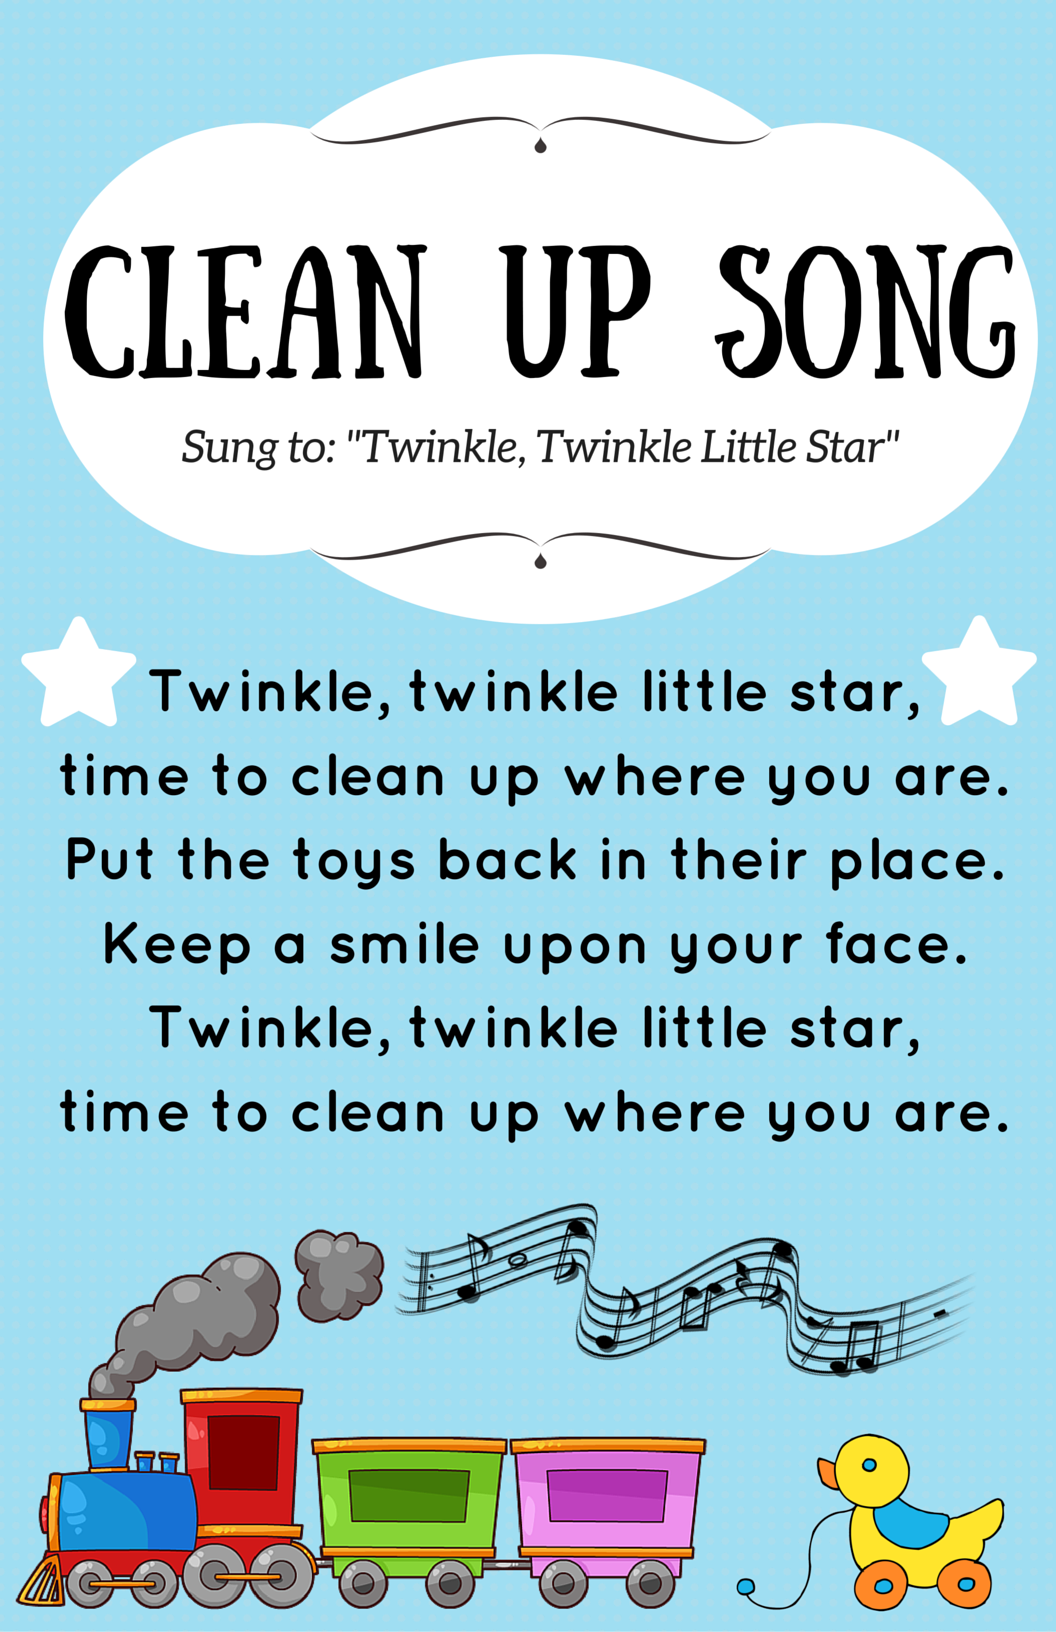 Cleanup Song Wonderfu